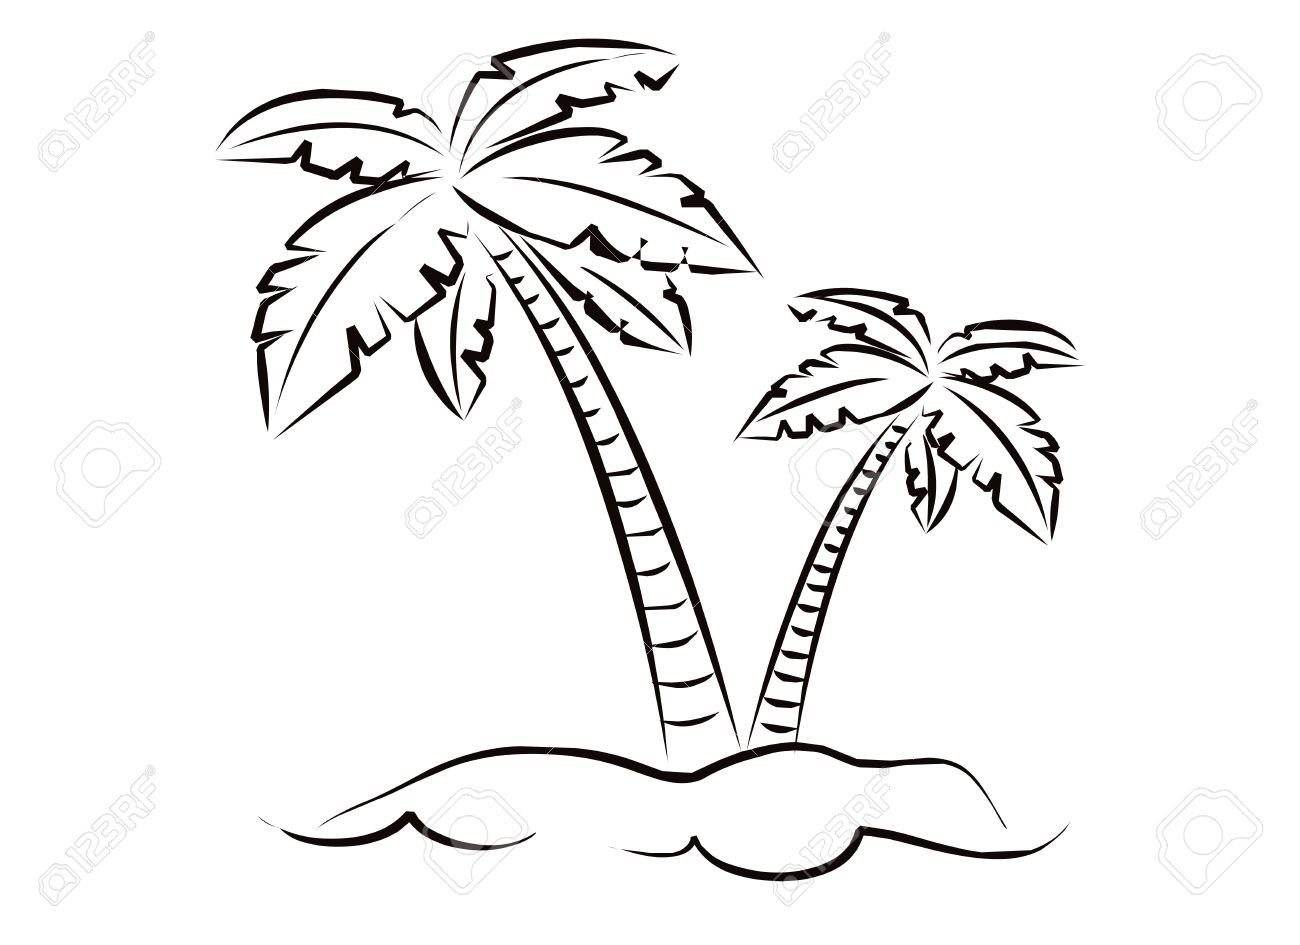 Coconut Palm Tree Drawing at GetDrawings | Free download